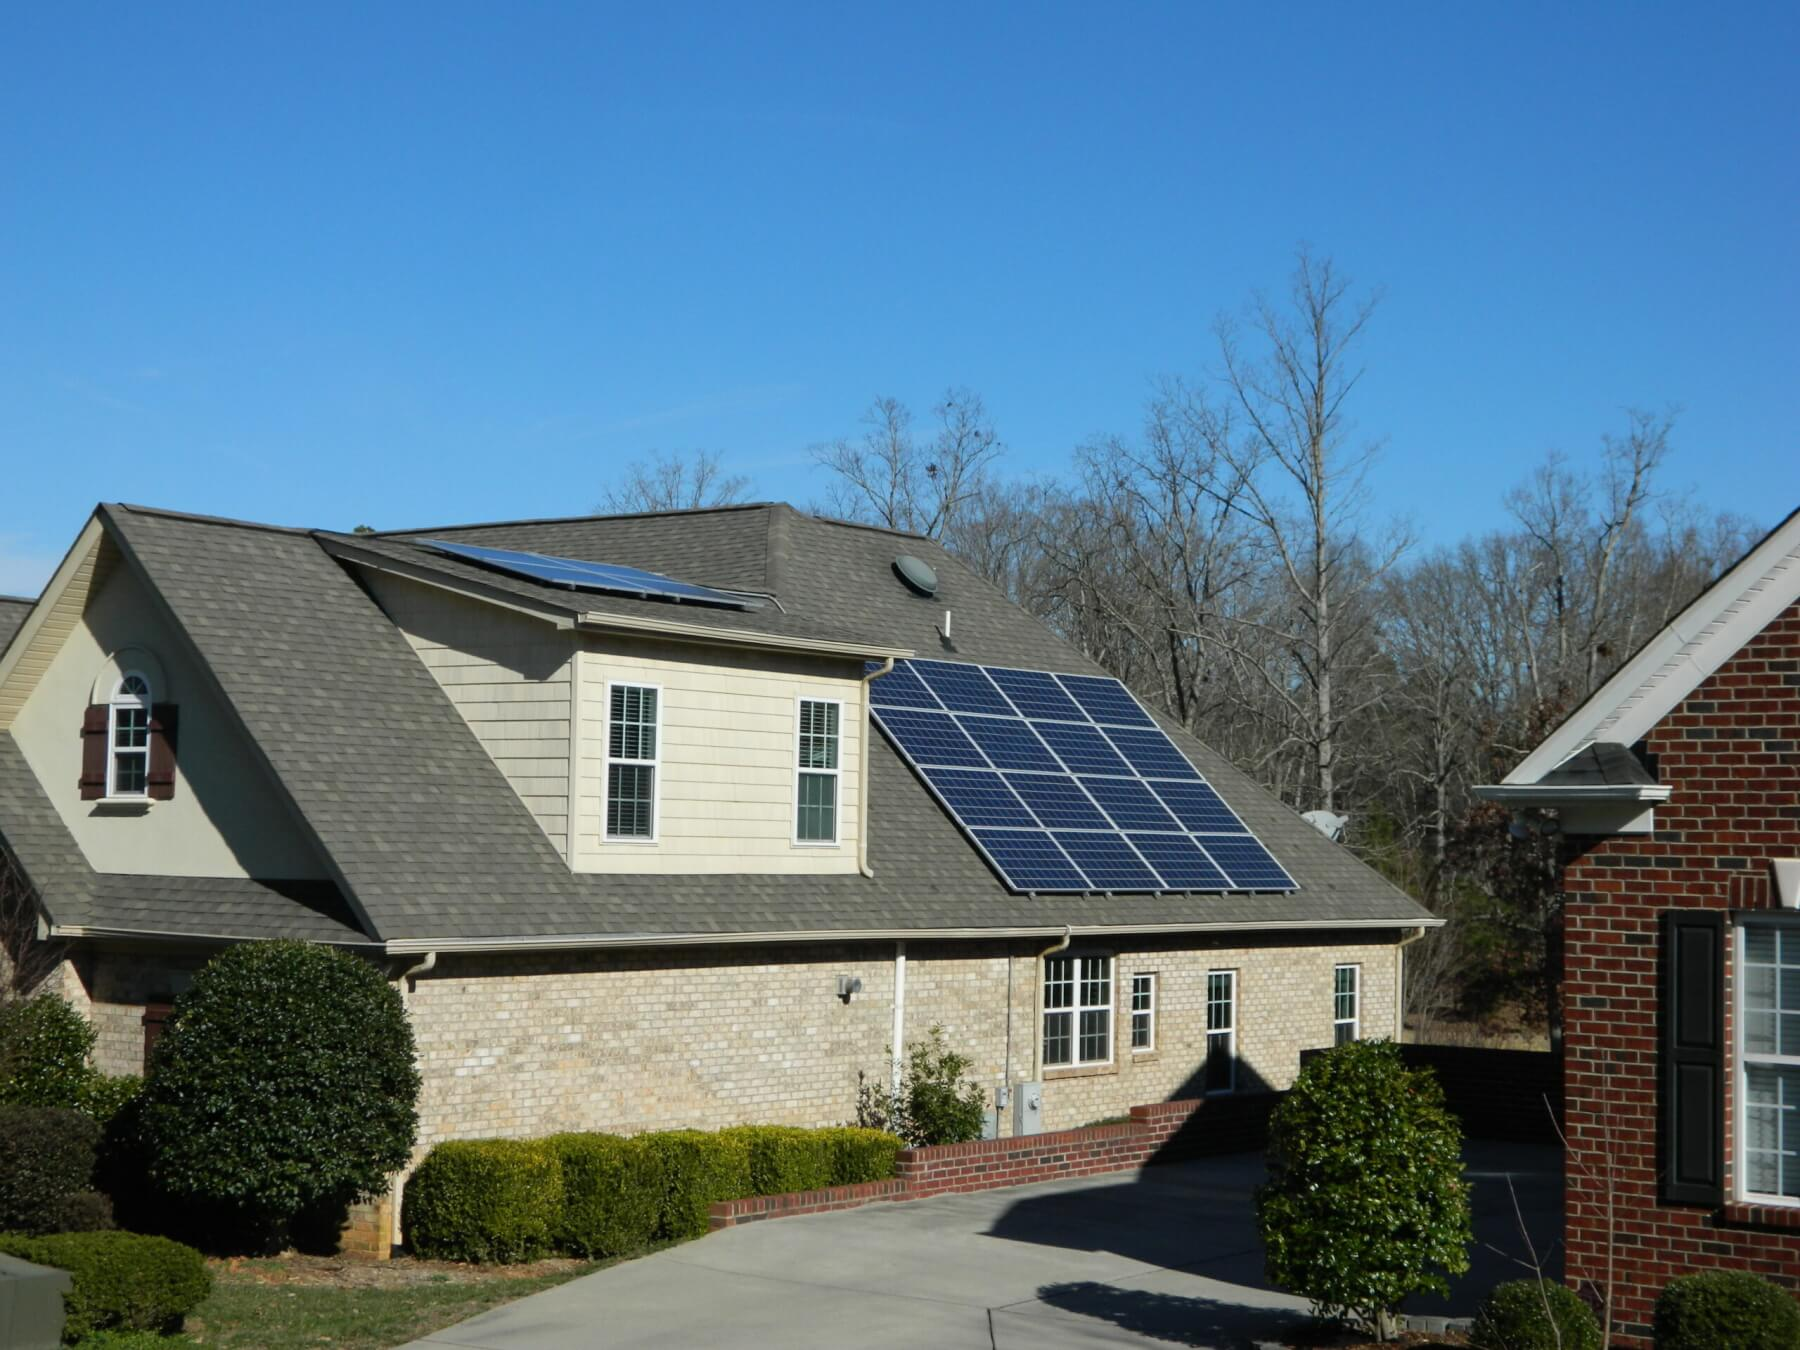 Beautiful house with solar panels installed on the roof